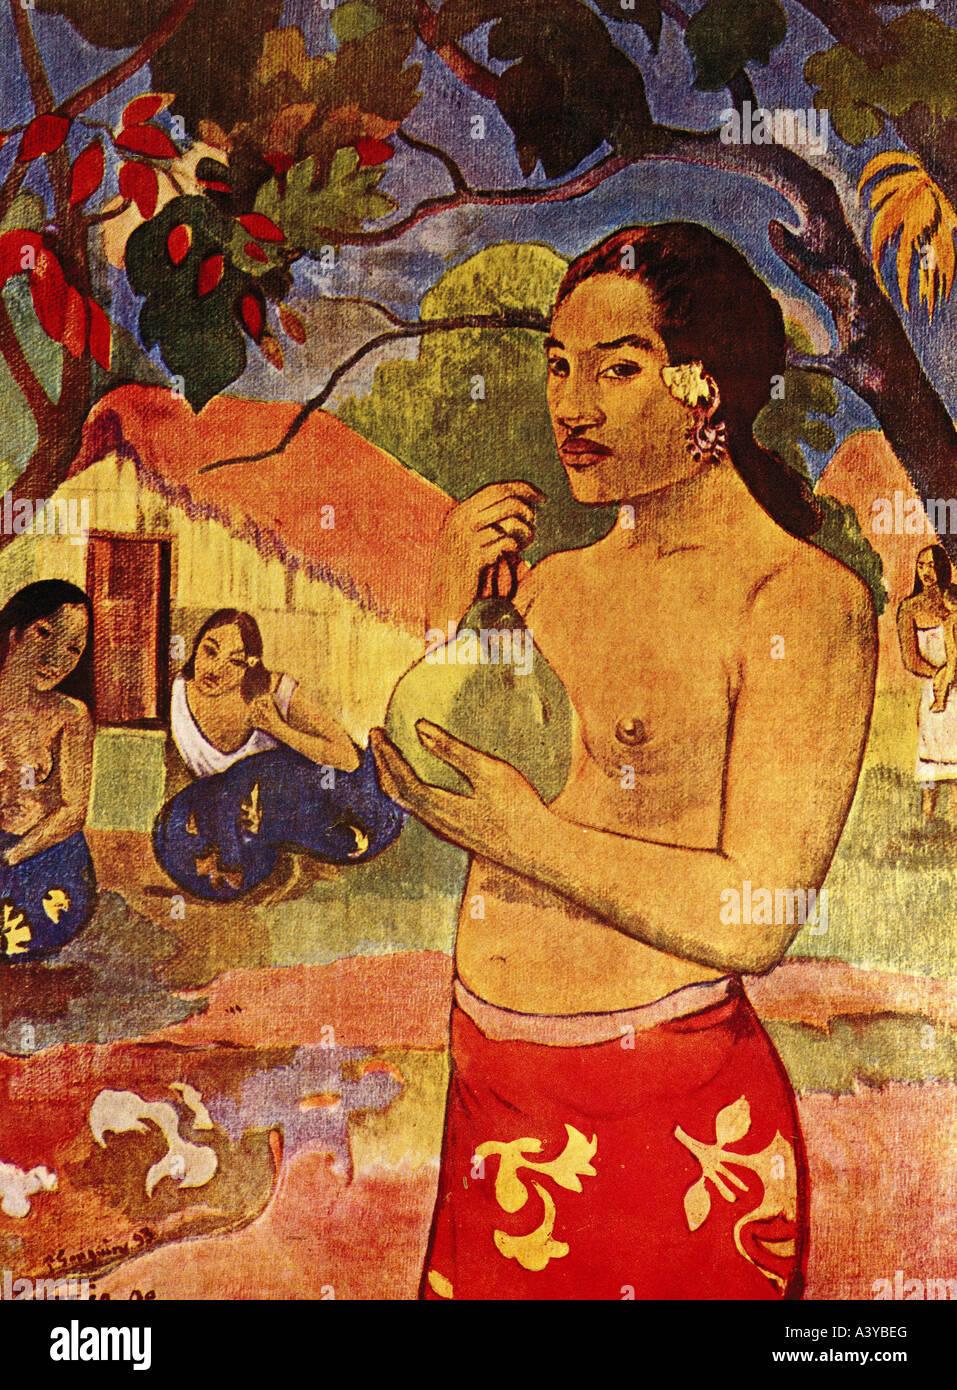 'fine arts, Gauguin, Paul, (1848 - 1903), painting, 'Tahiti woman with fruit', 1893, oil on canvas, - Stock Image